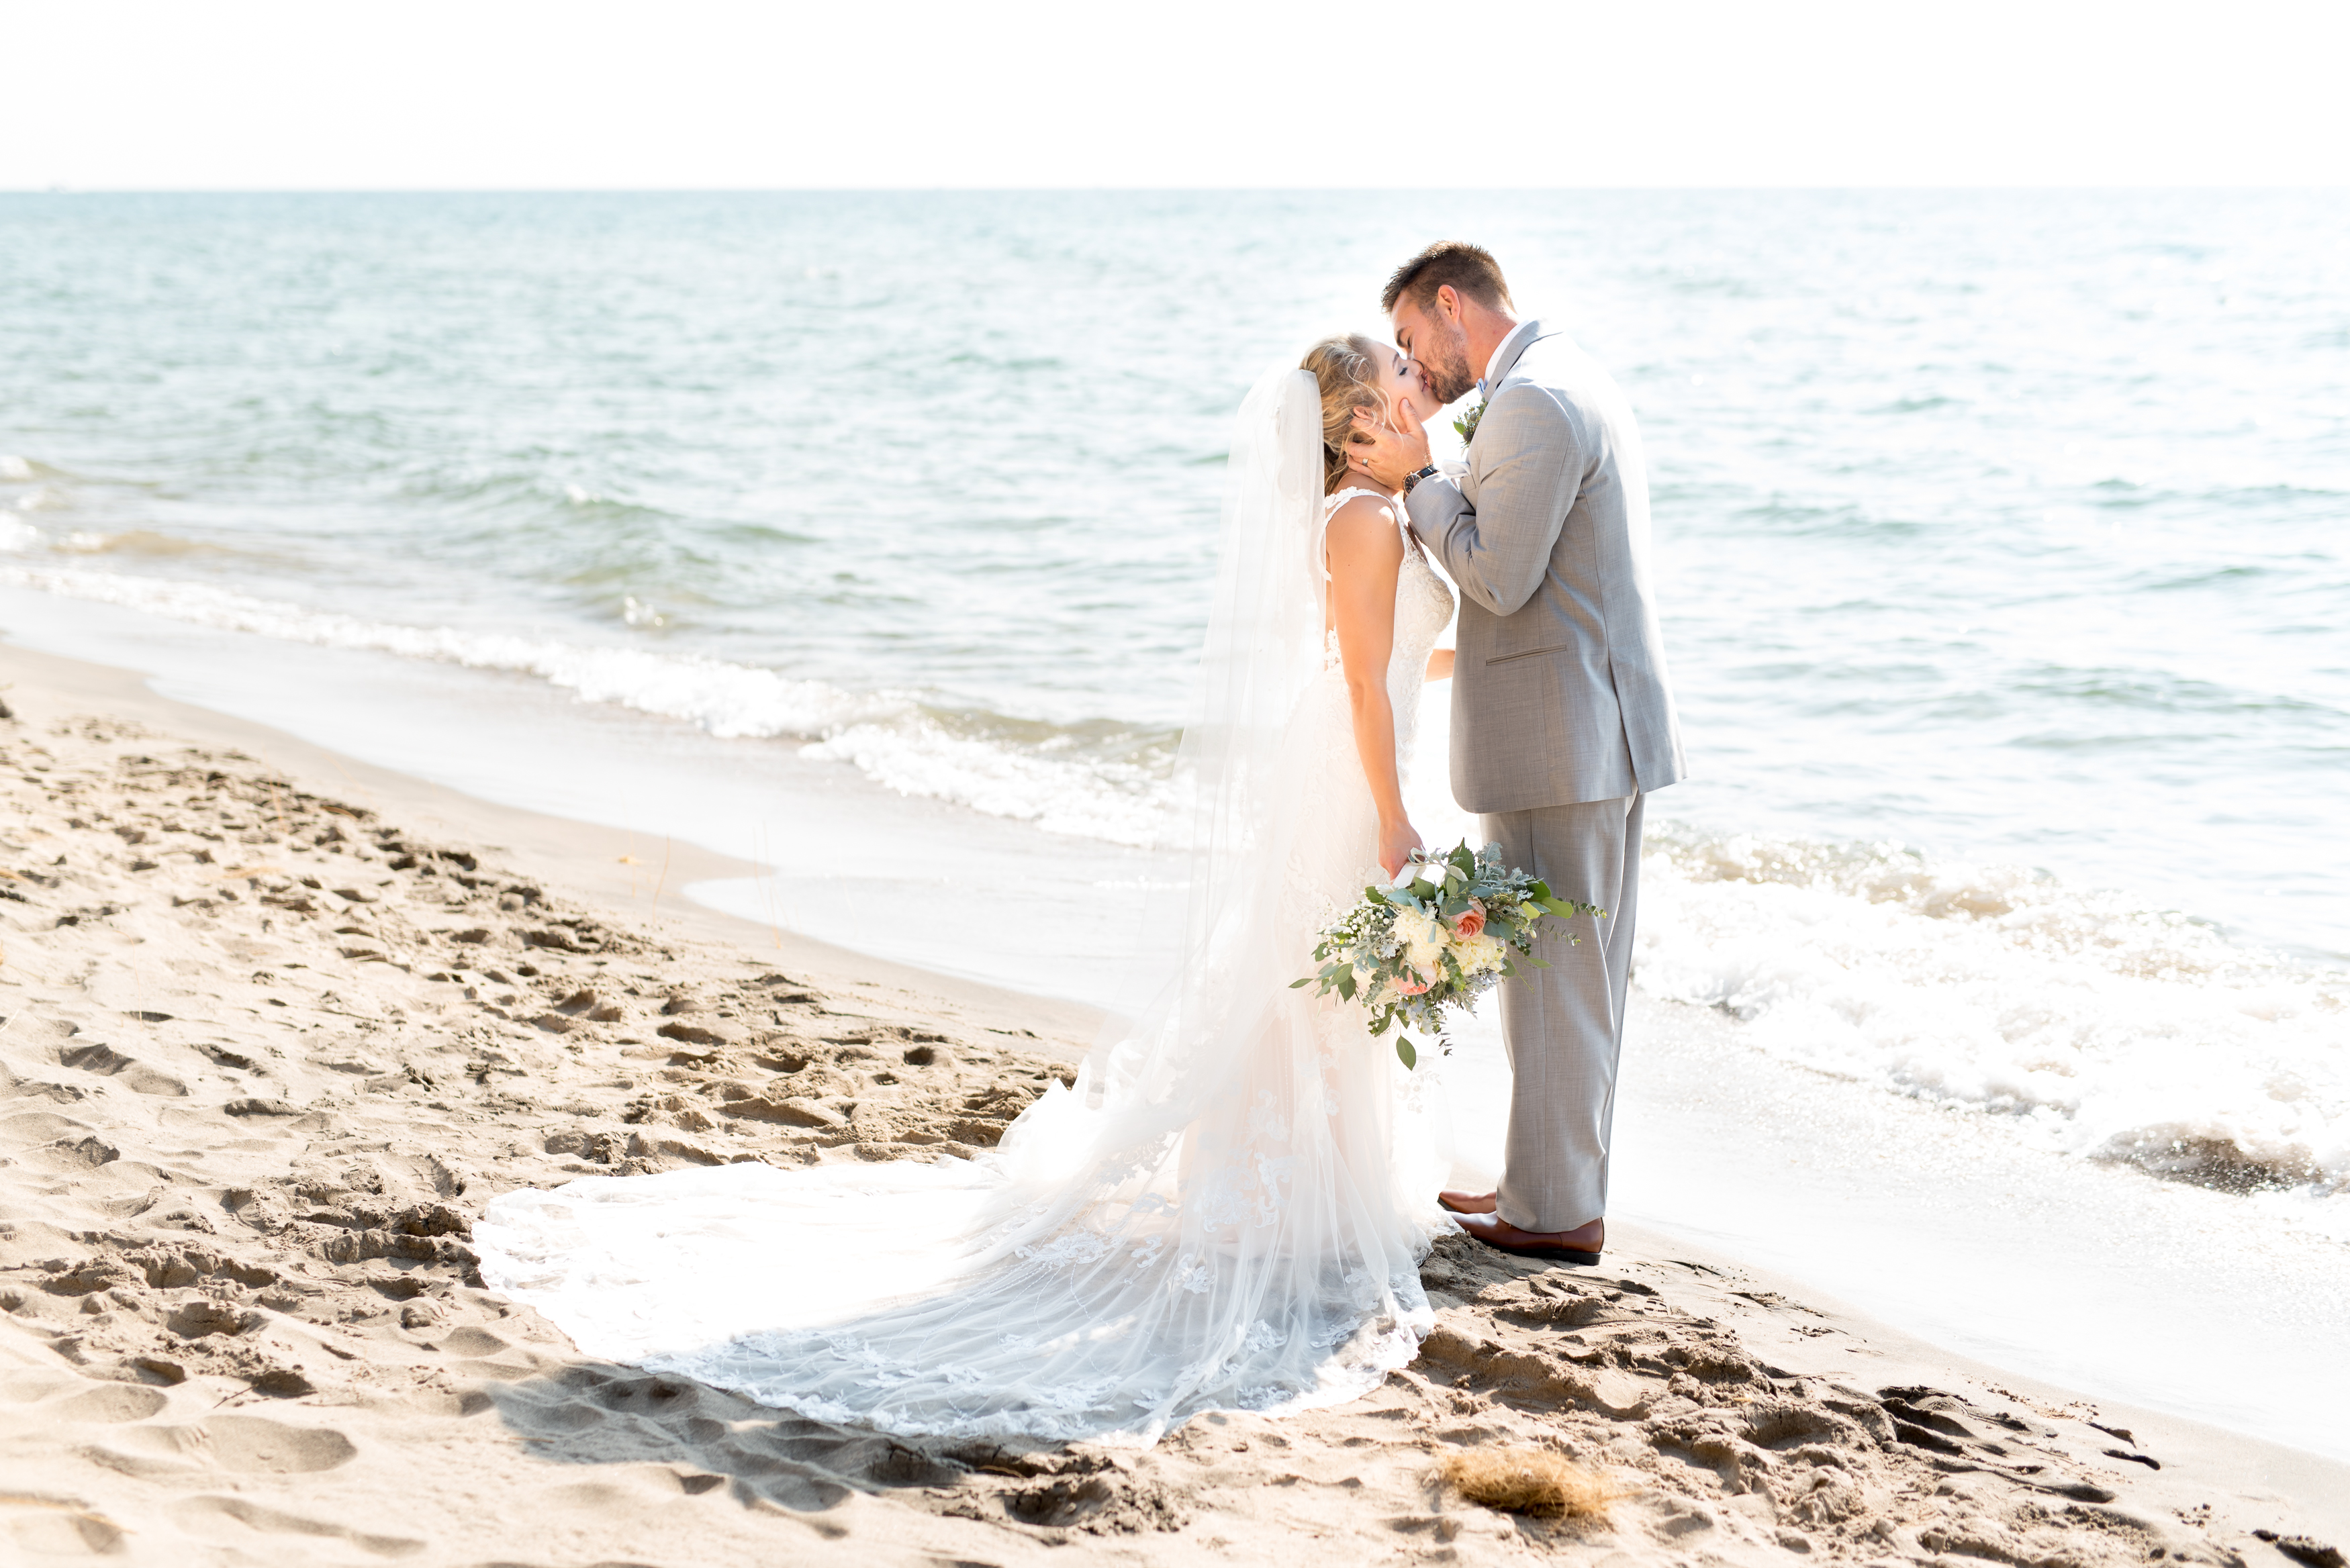 boatwerks-holland-lake-michigan-waterfront-outdoor-beach-wedding-photo-578